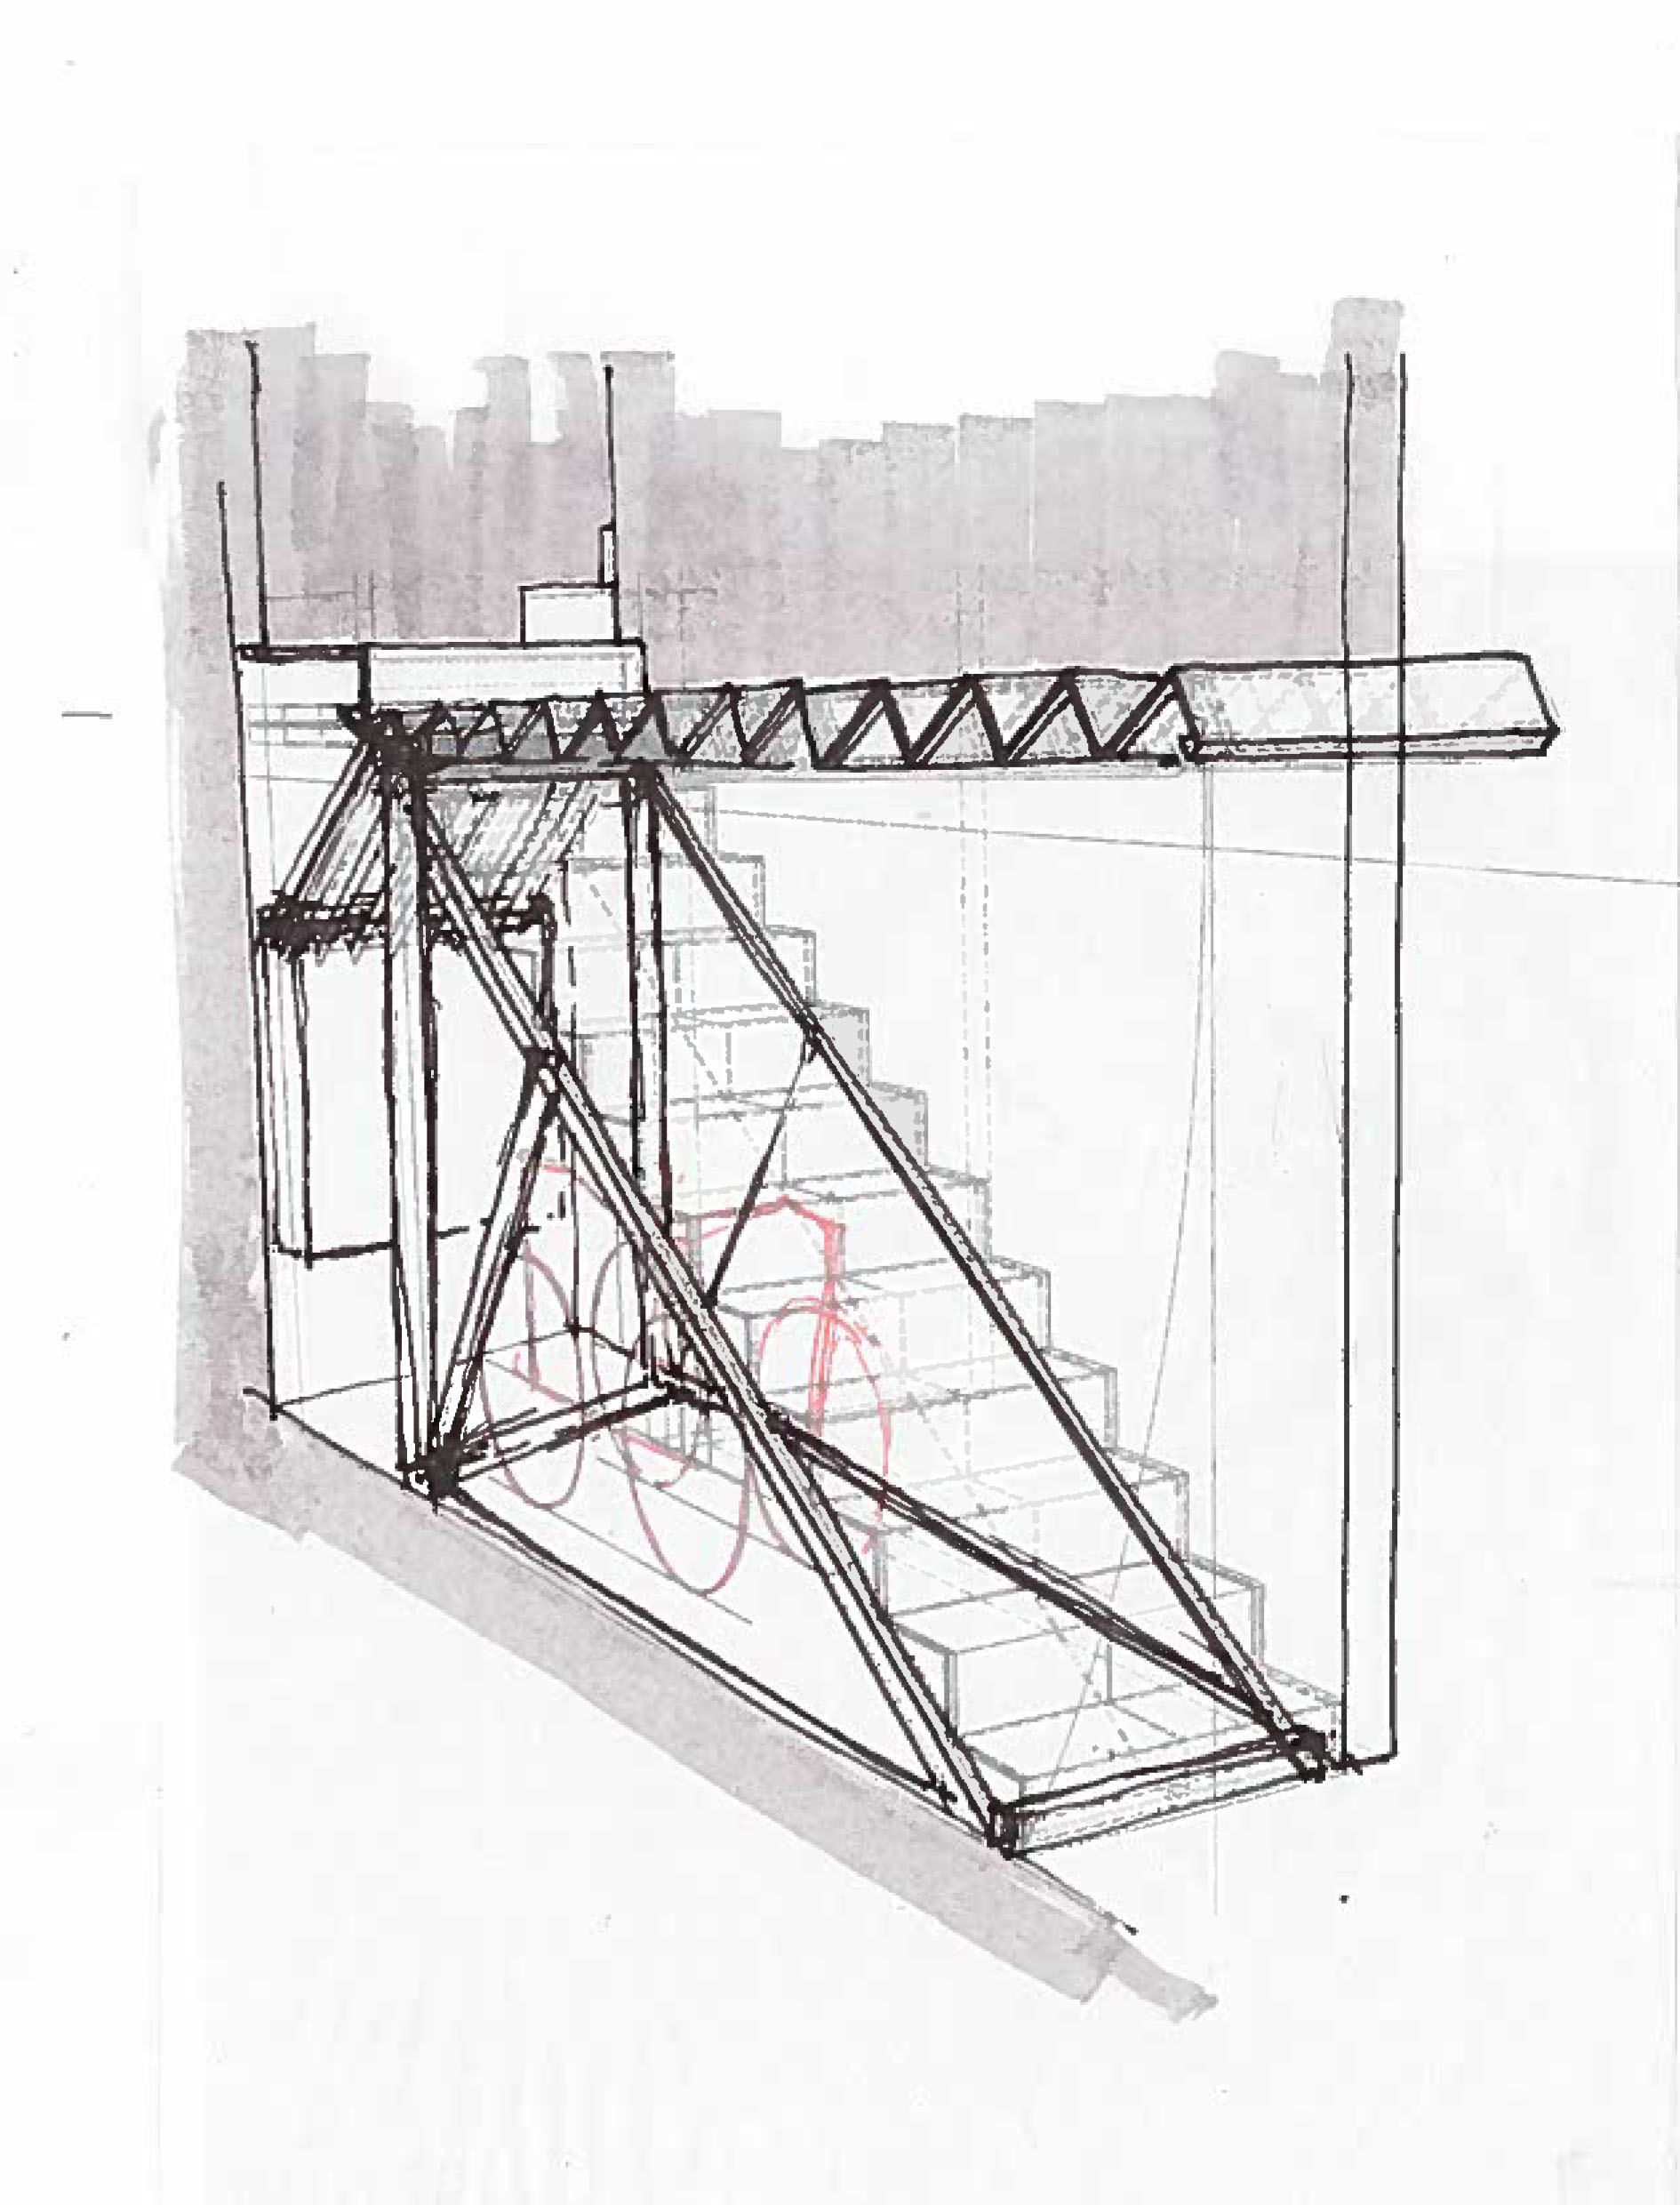 Sketch of the counter-weighted stair.